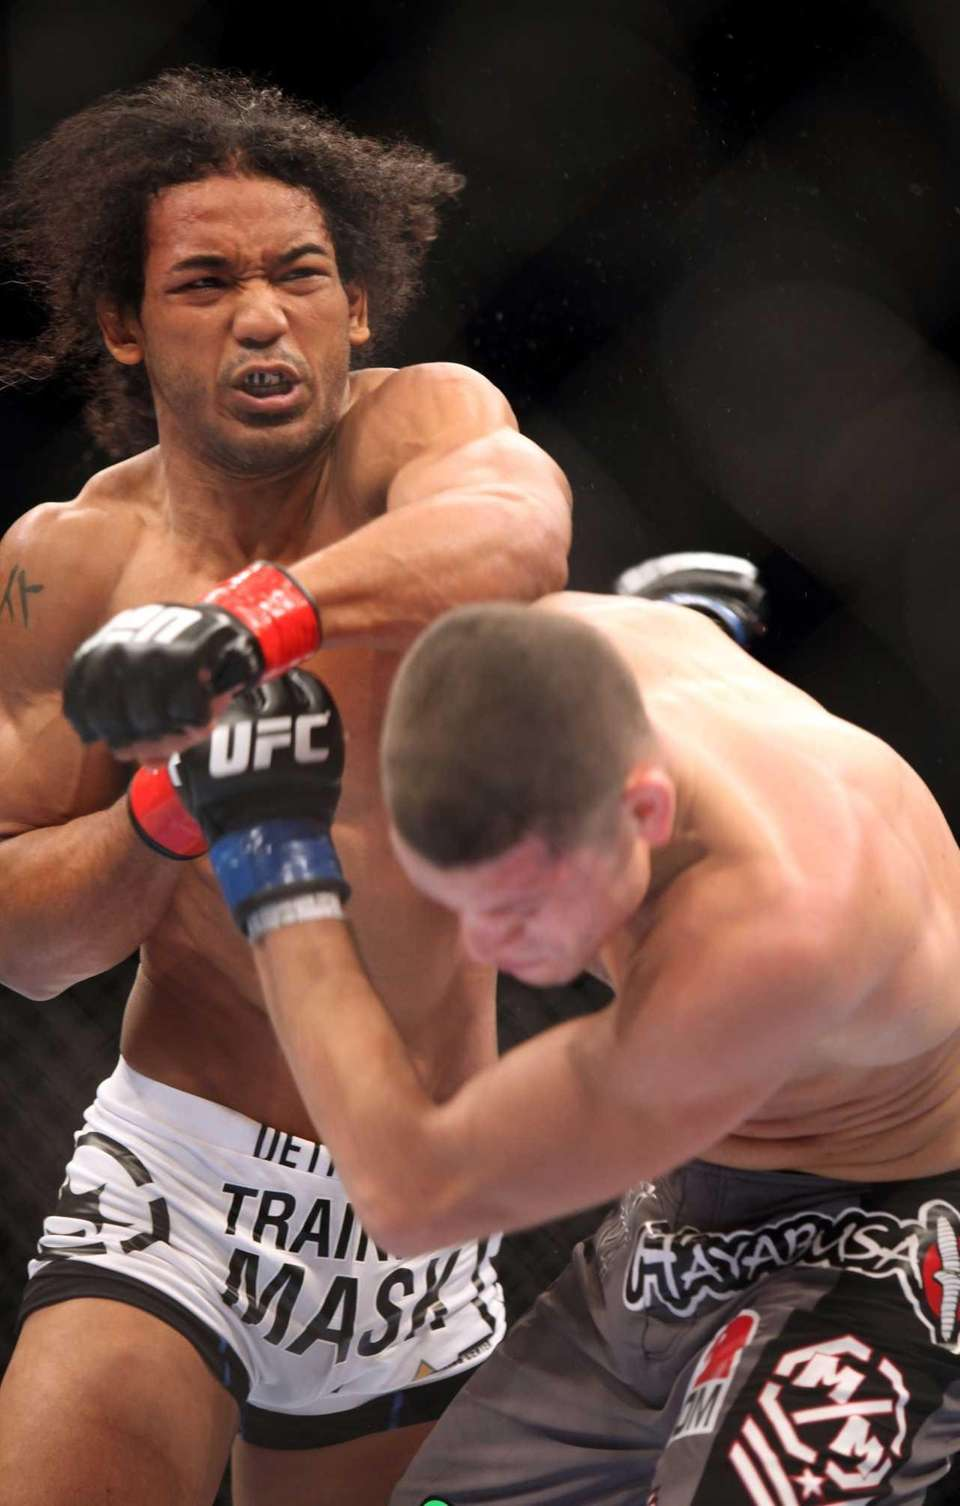 UFC lightweight champion Benson Henderson, left, in action